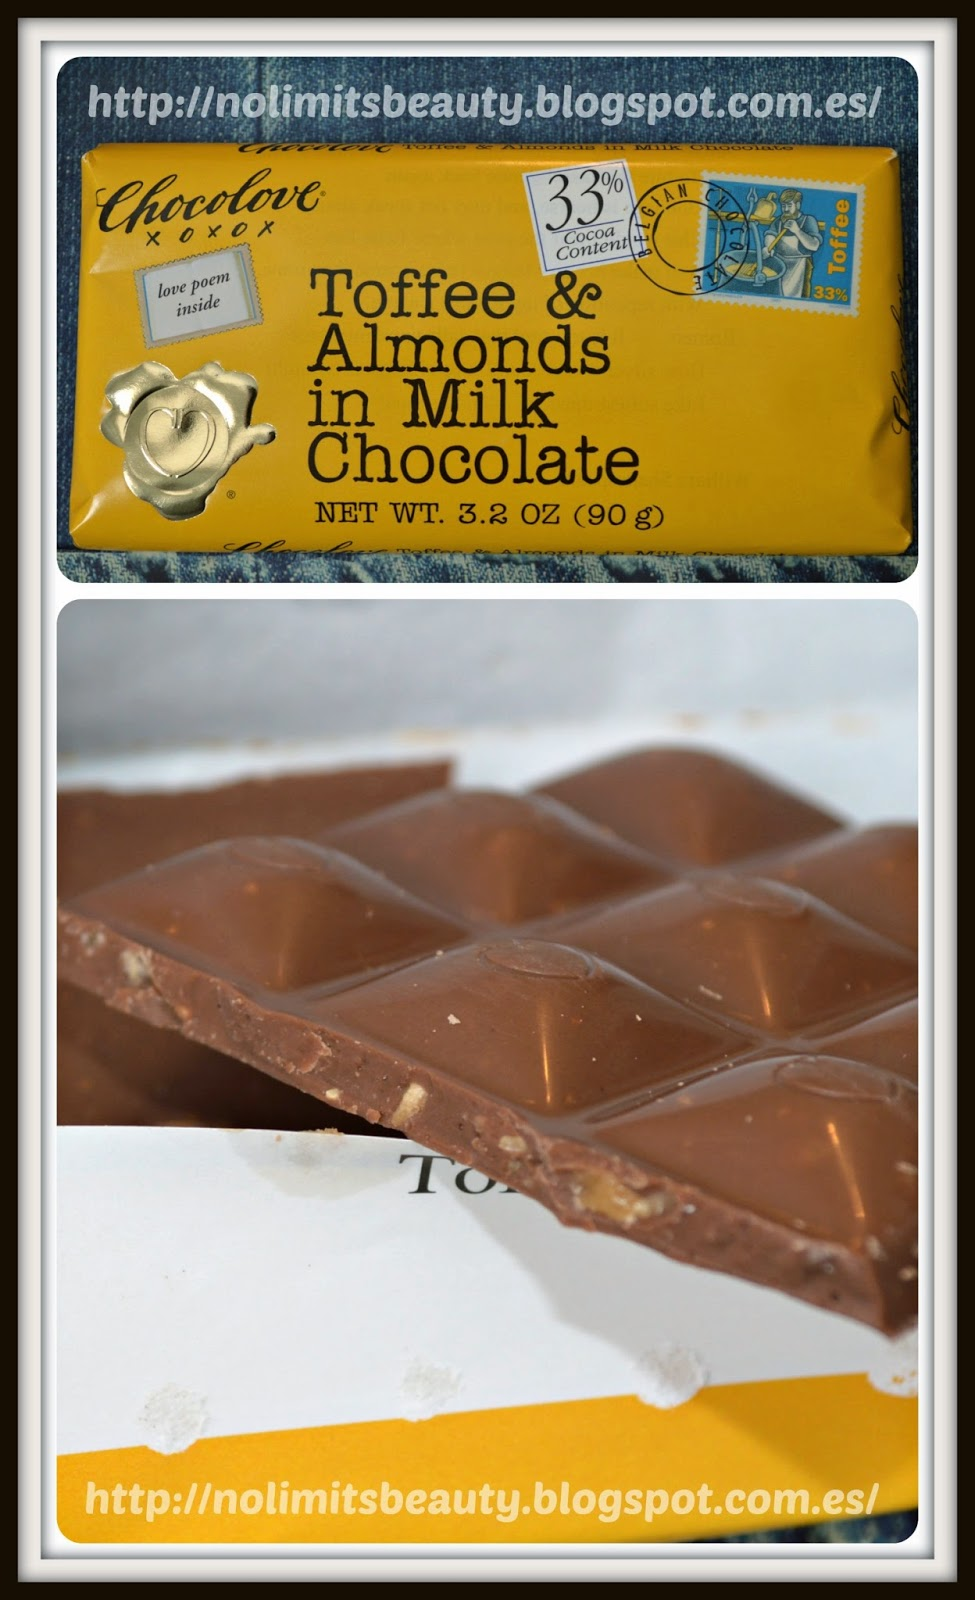 Toffee & Almonds in Milk Chocolate de Chocolove